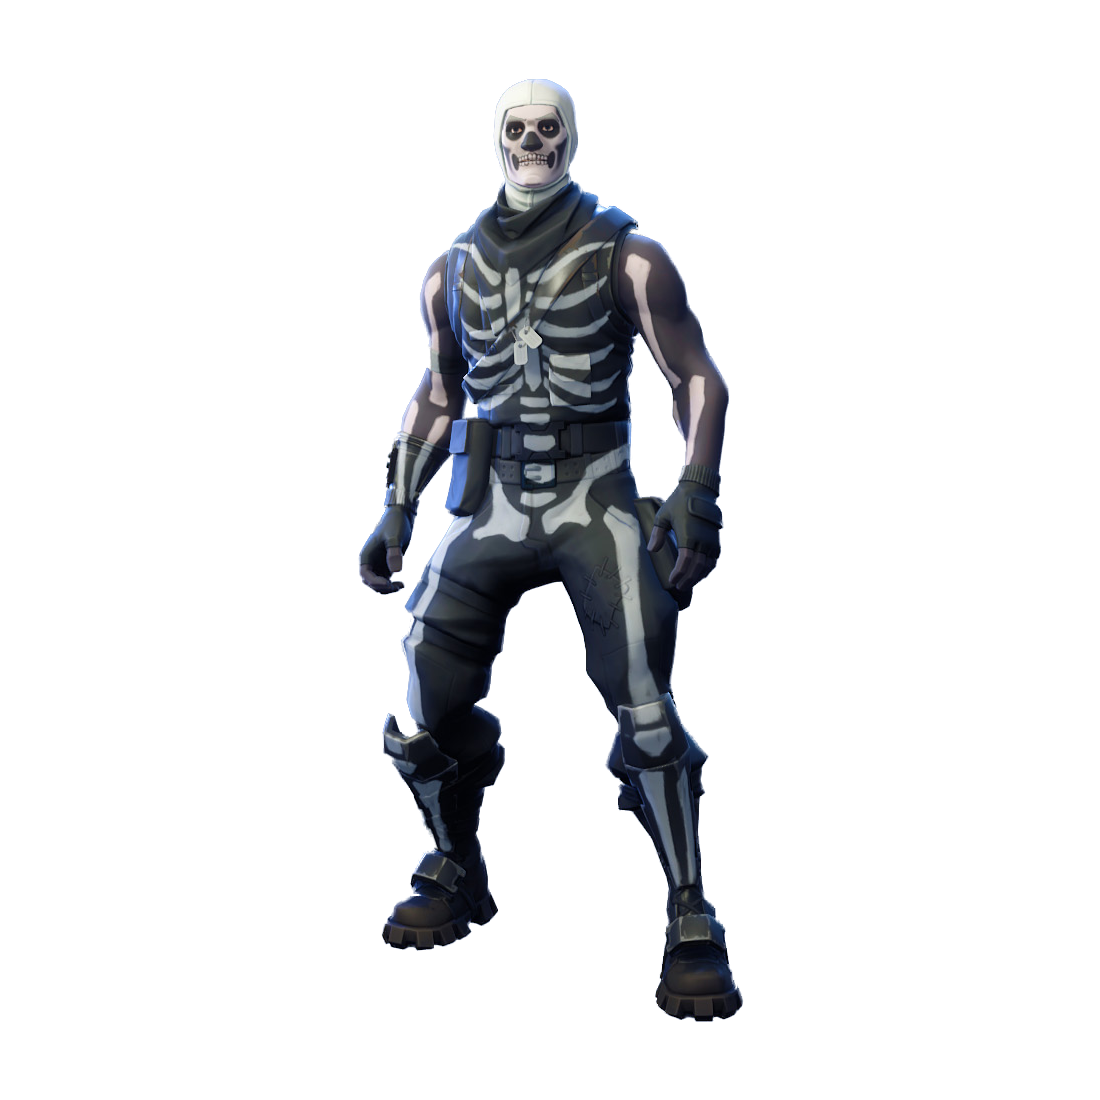 Skull trooper clipart 1080p. Fortnite png image purepng